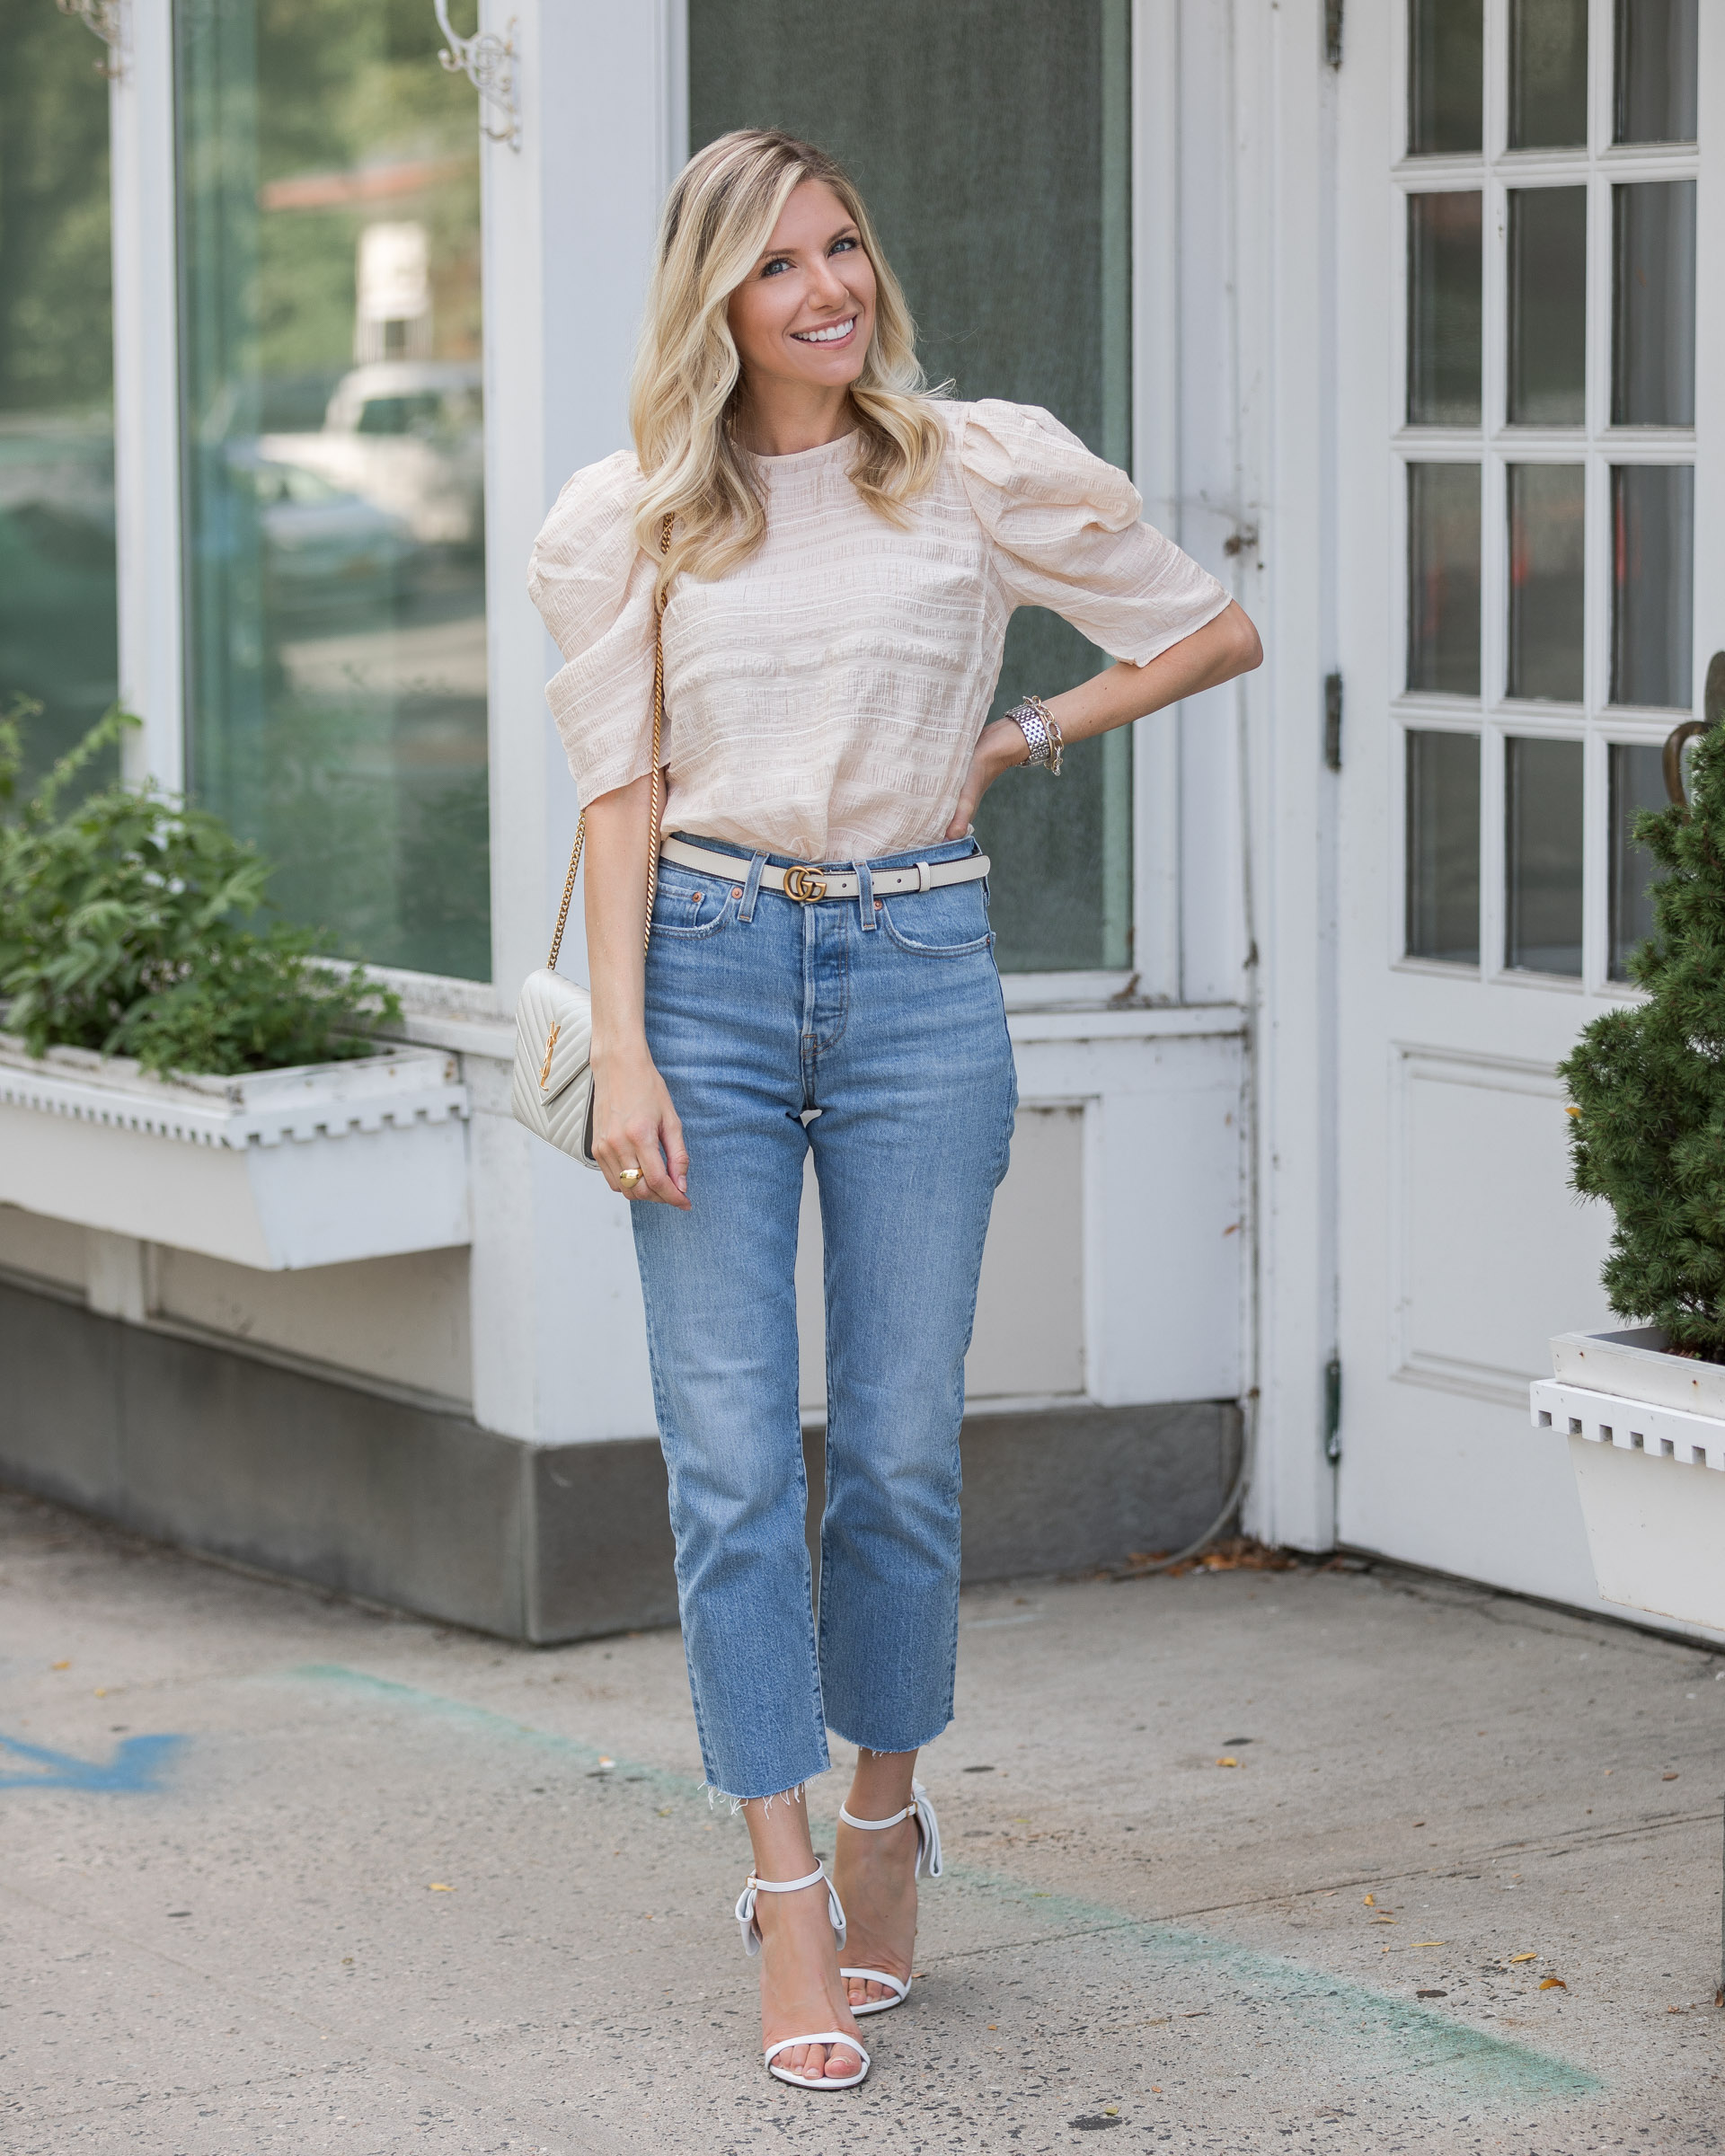 cropped-levis-jeans-and-puff-sleeve-top-the-glamorous-gal